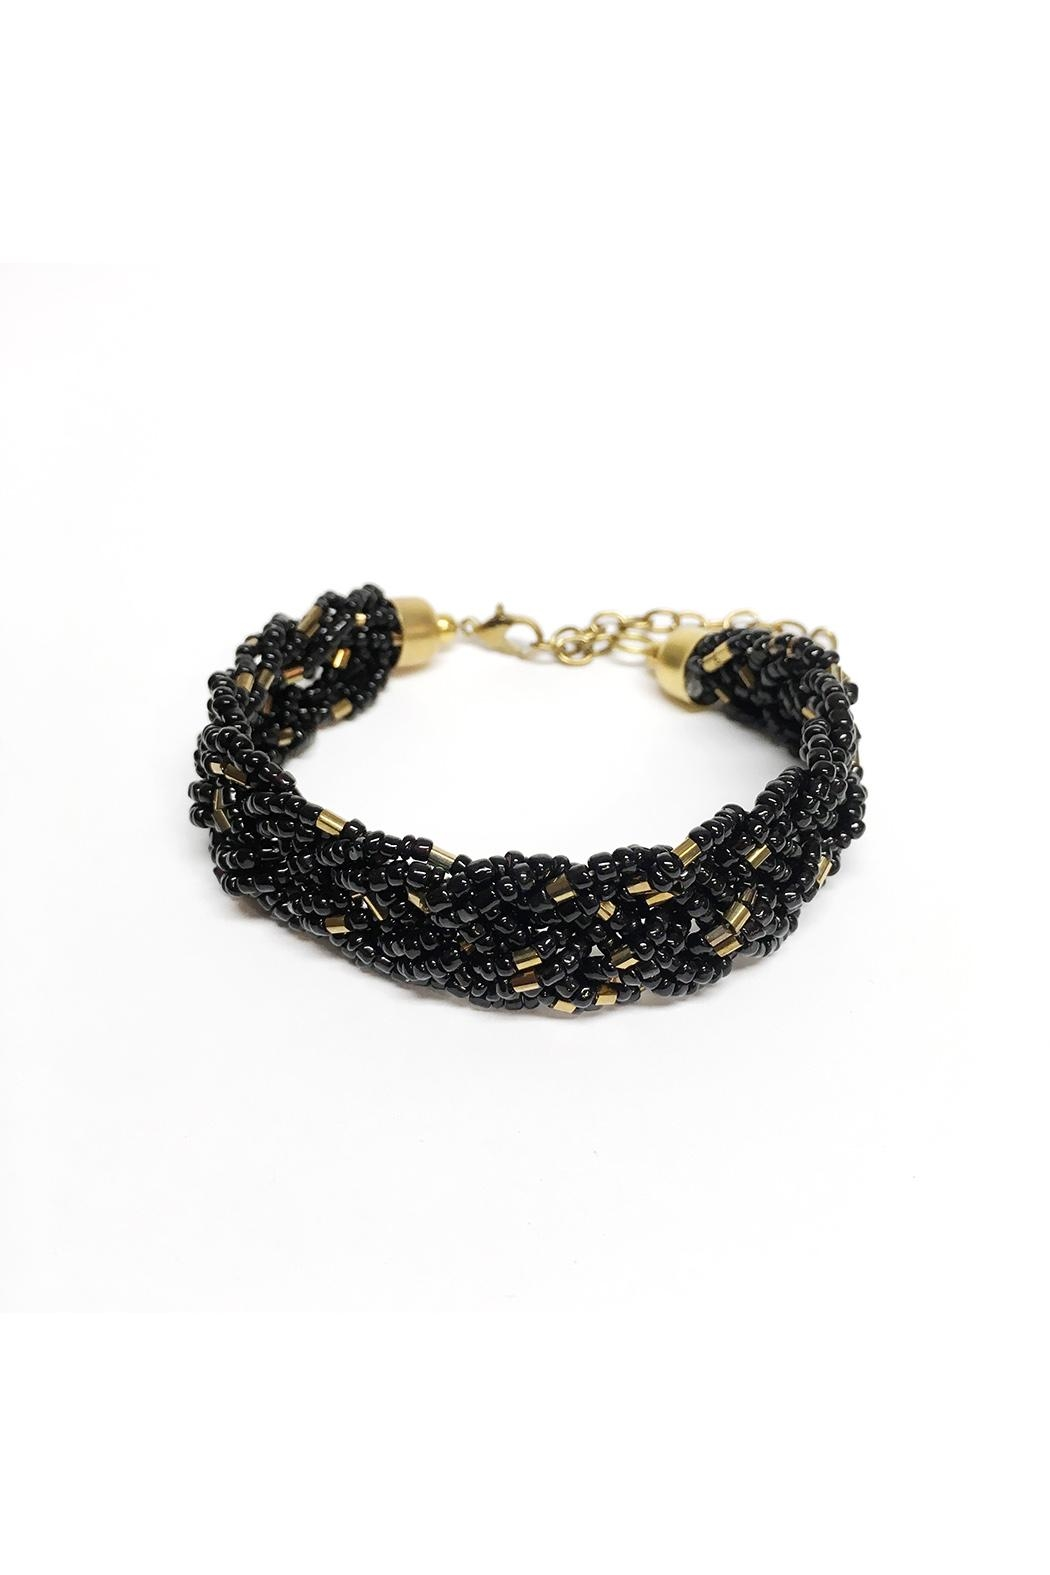 jewelry gallery metallic lyst for men gold silver product black normal diesel in bracelet beat